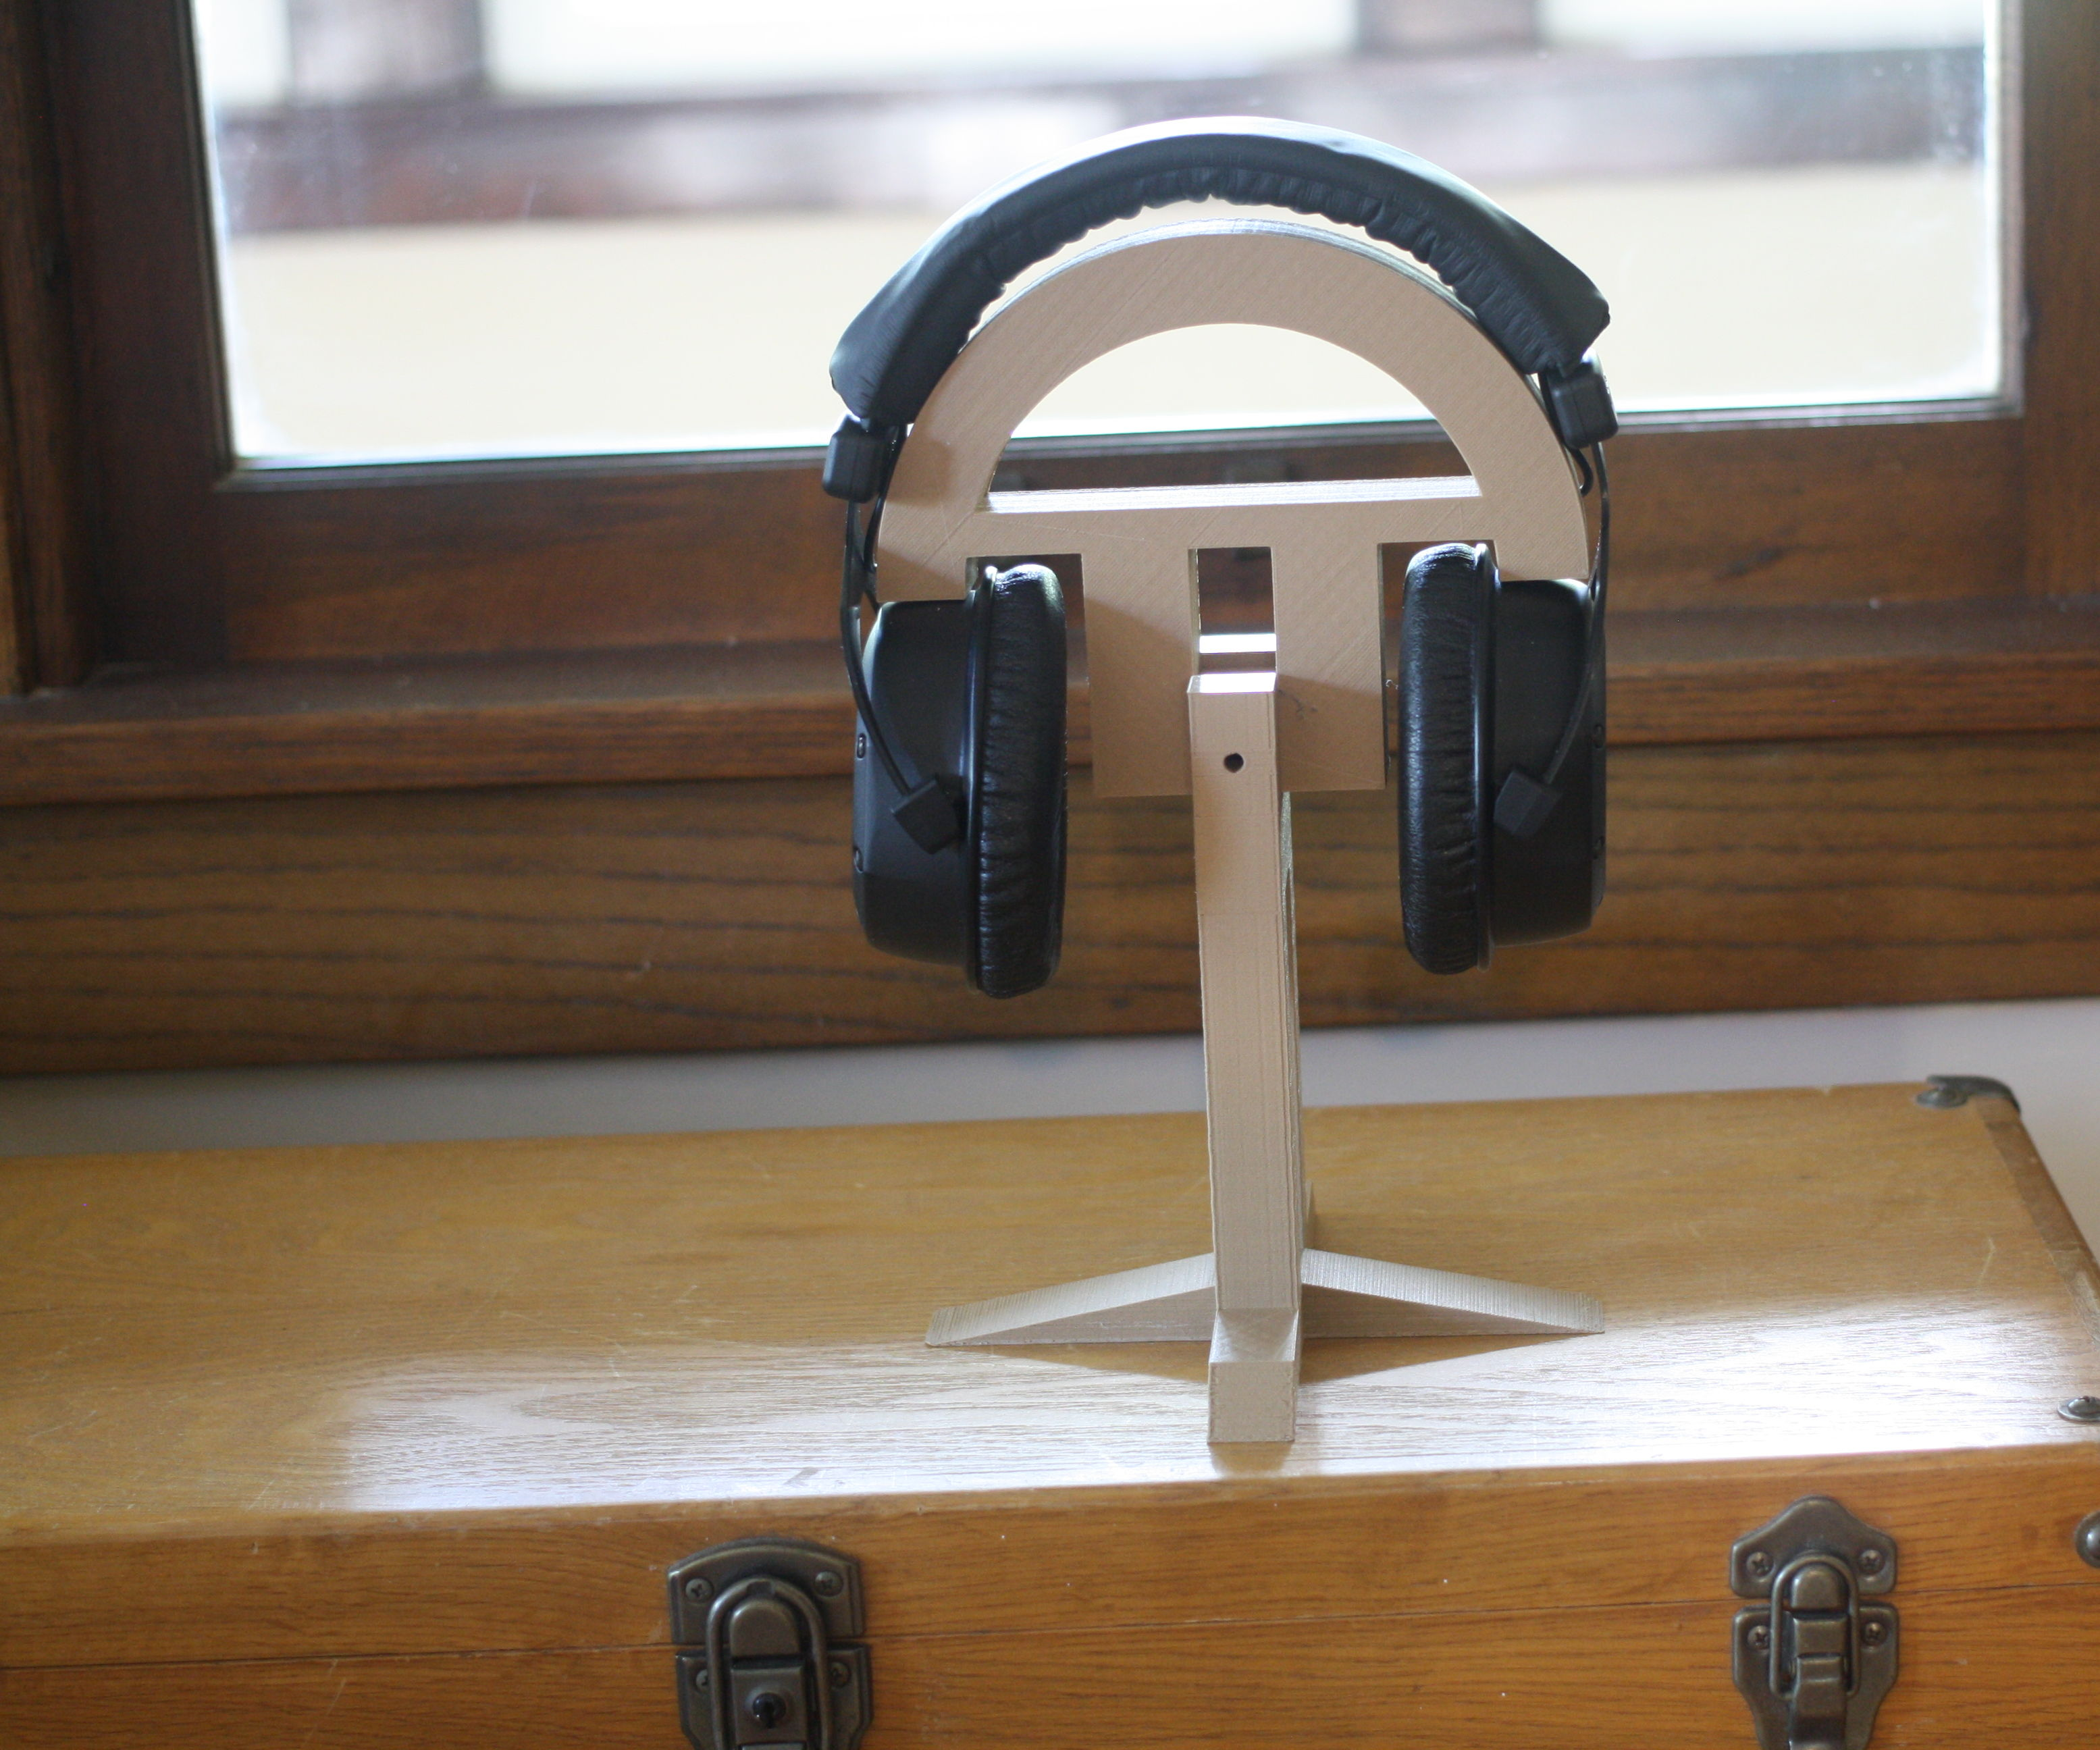 3D Printing a Headphone Stand